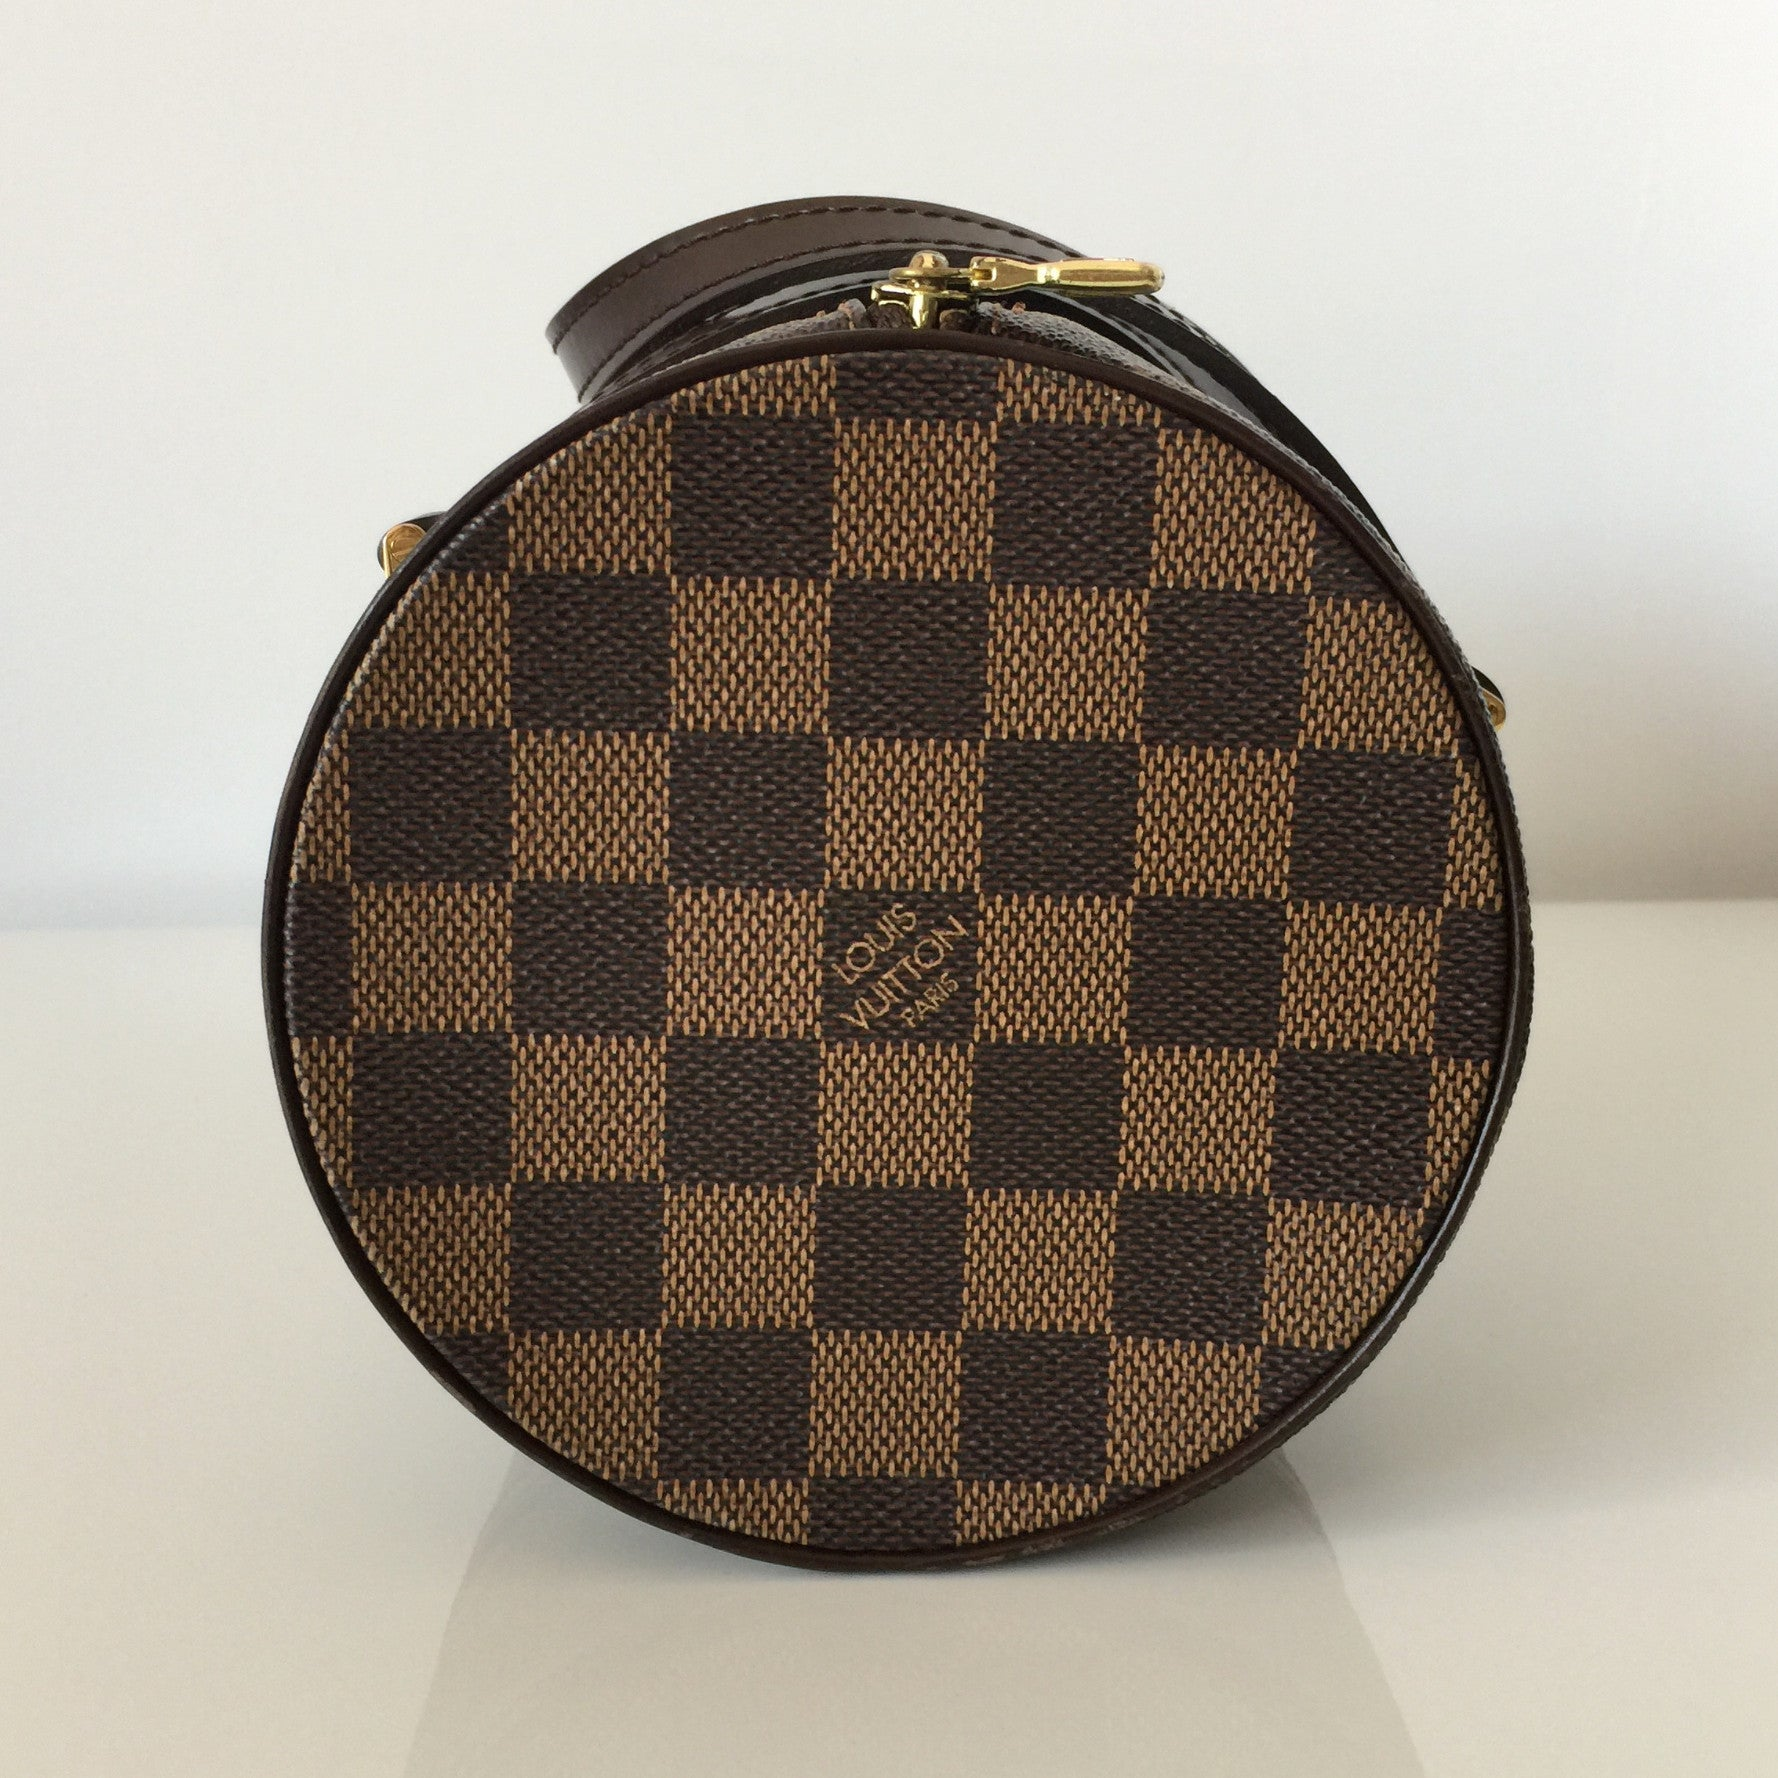 Authentic LOUIS VUITTON Papillon Damier Ebene